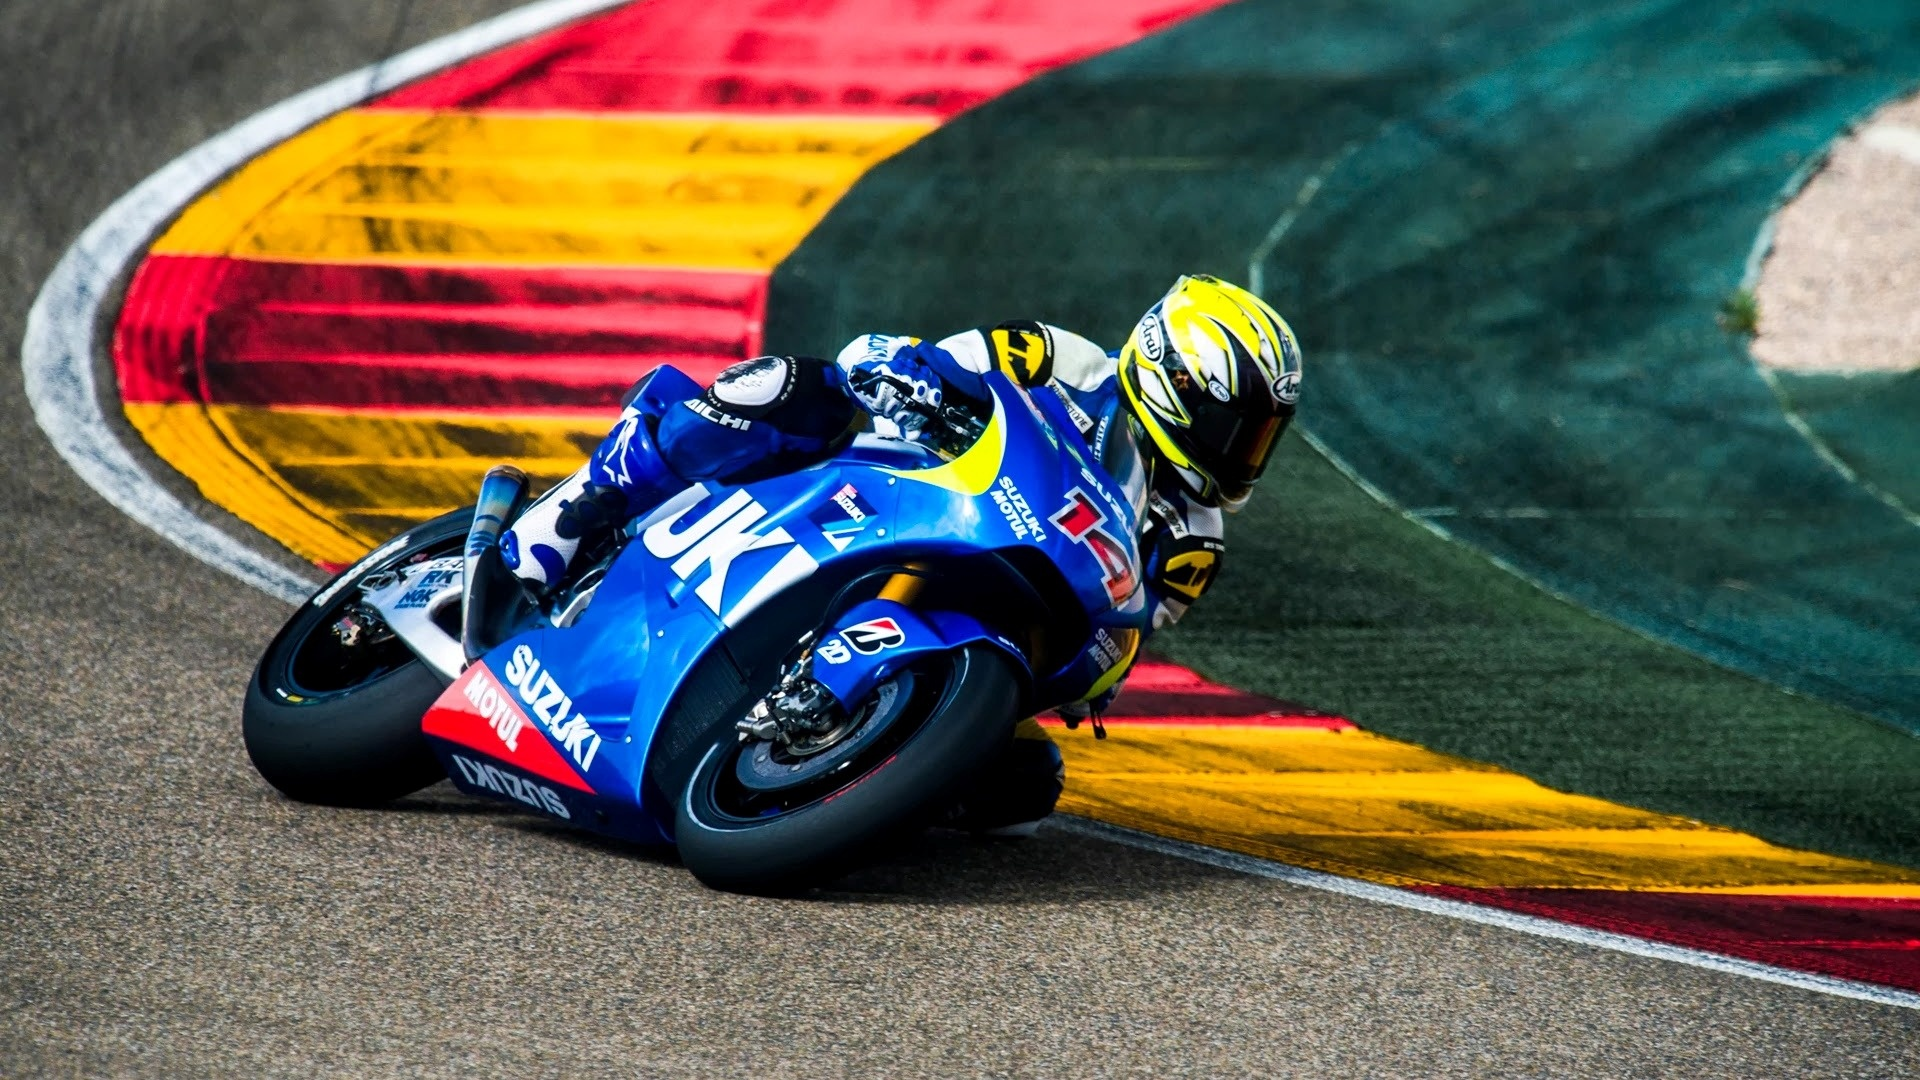 Os X Wallpapers Hd Suzuki Motogp Huge 2013 Wallpapers 1920x1080 736757